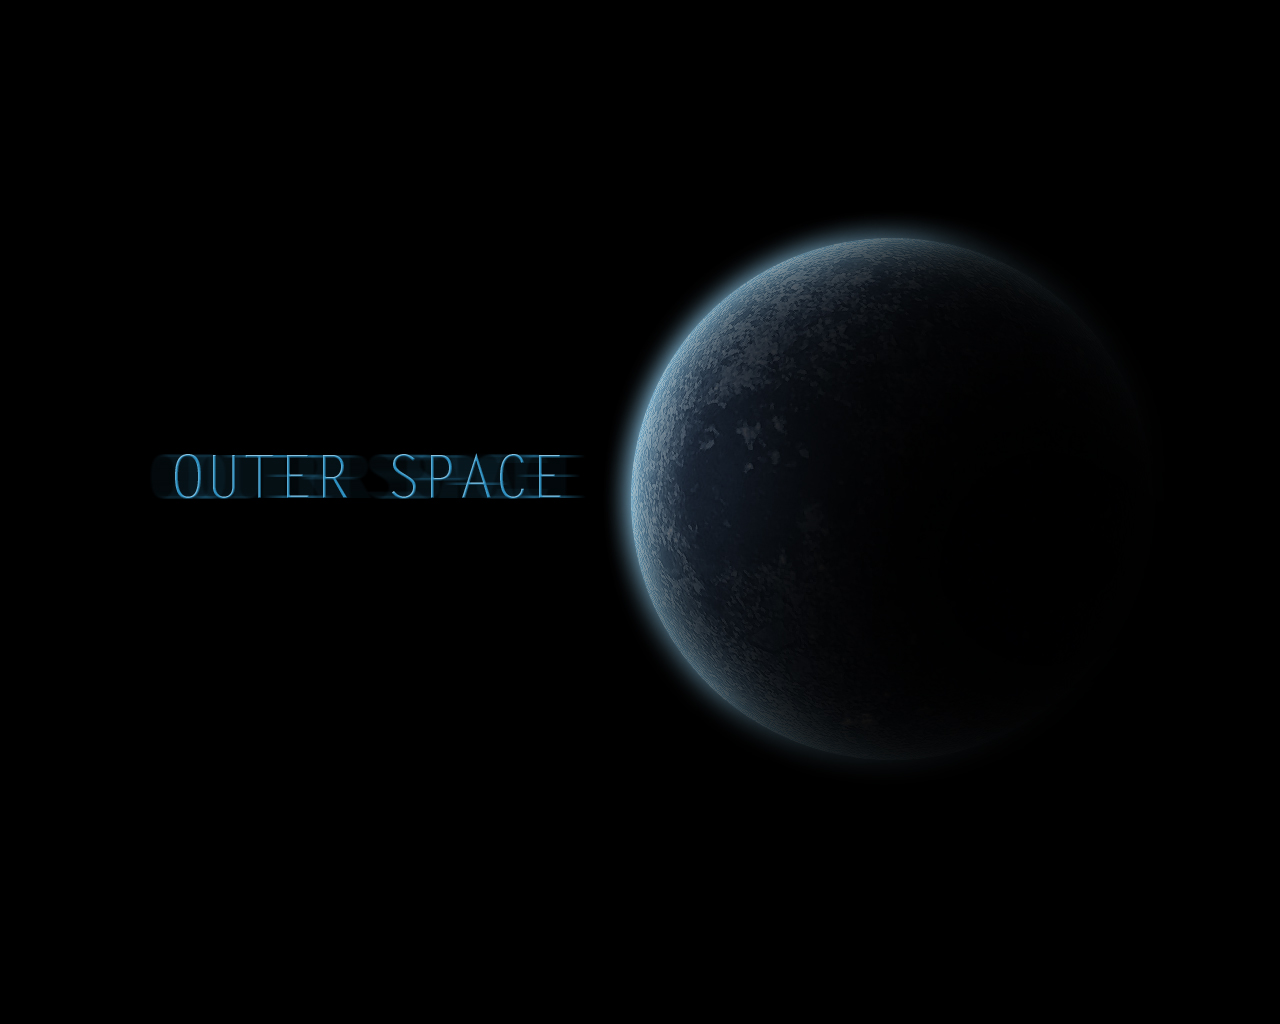 Outer space atanas valkov for Outer space studios